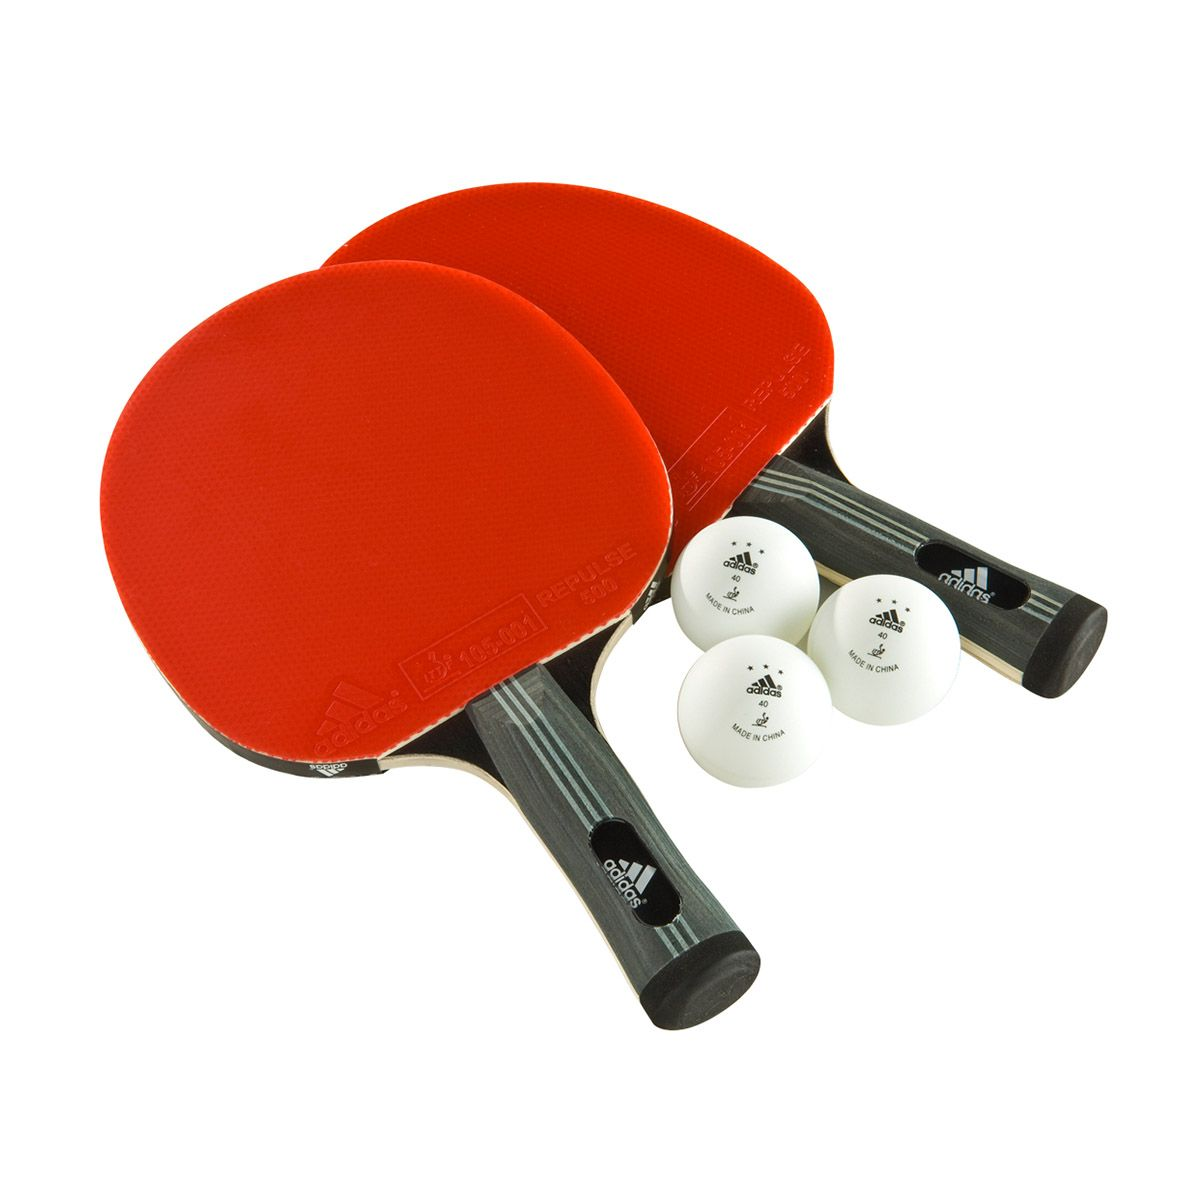 adidas comp club ii table tennis set. Black Bedroom Furniture Sets. Home Design Ideas